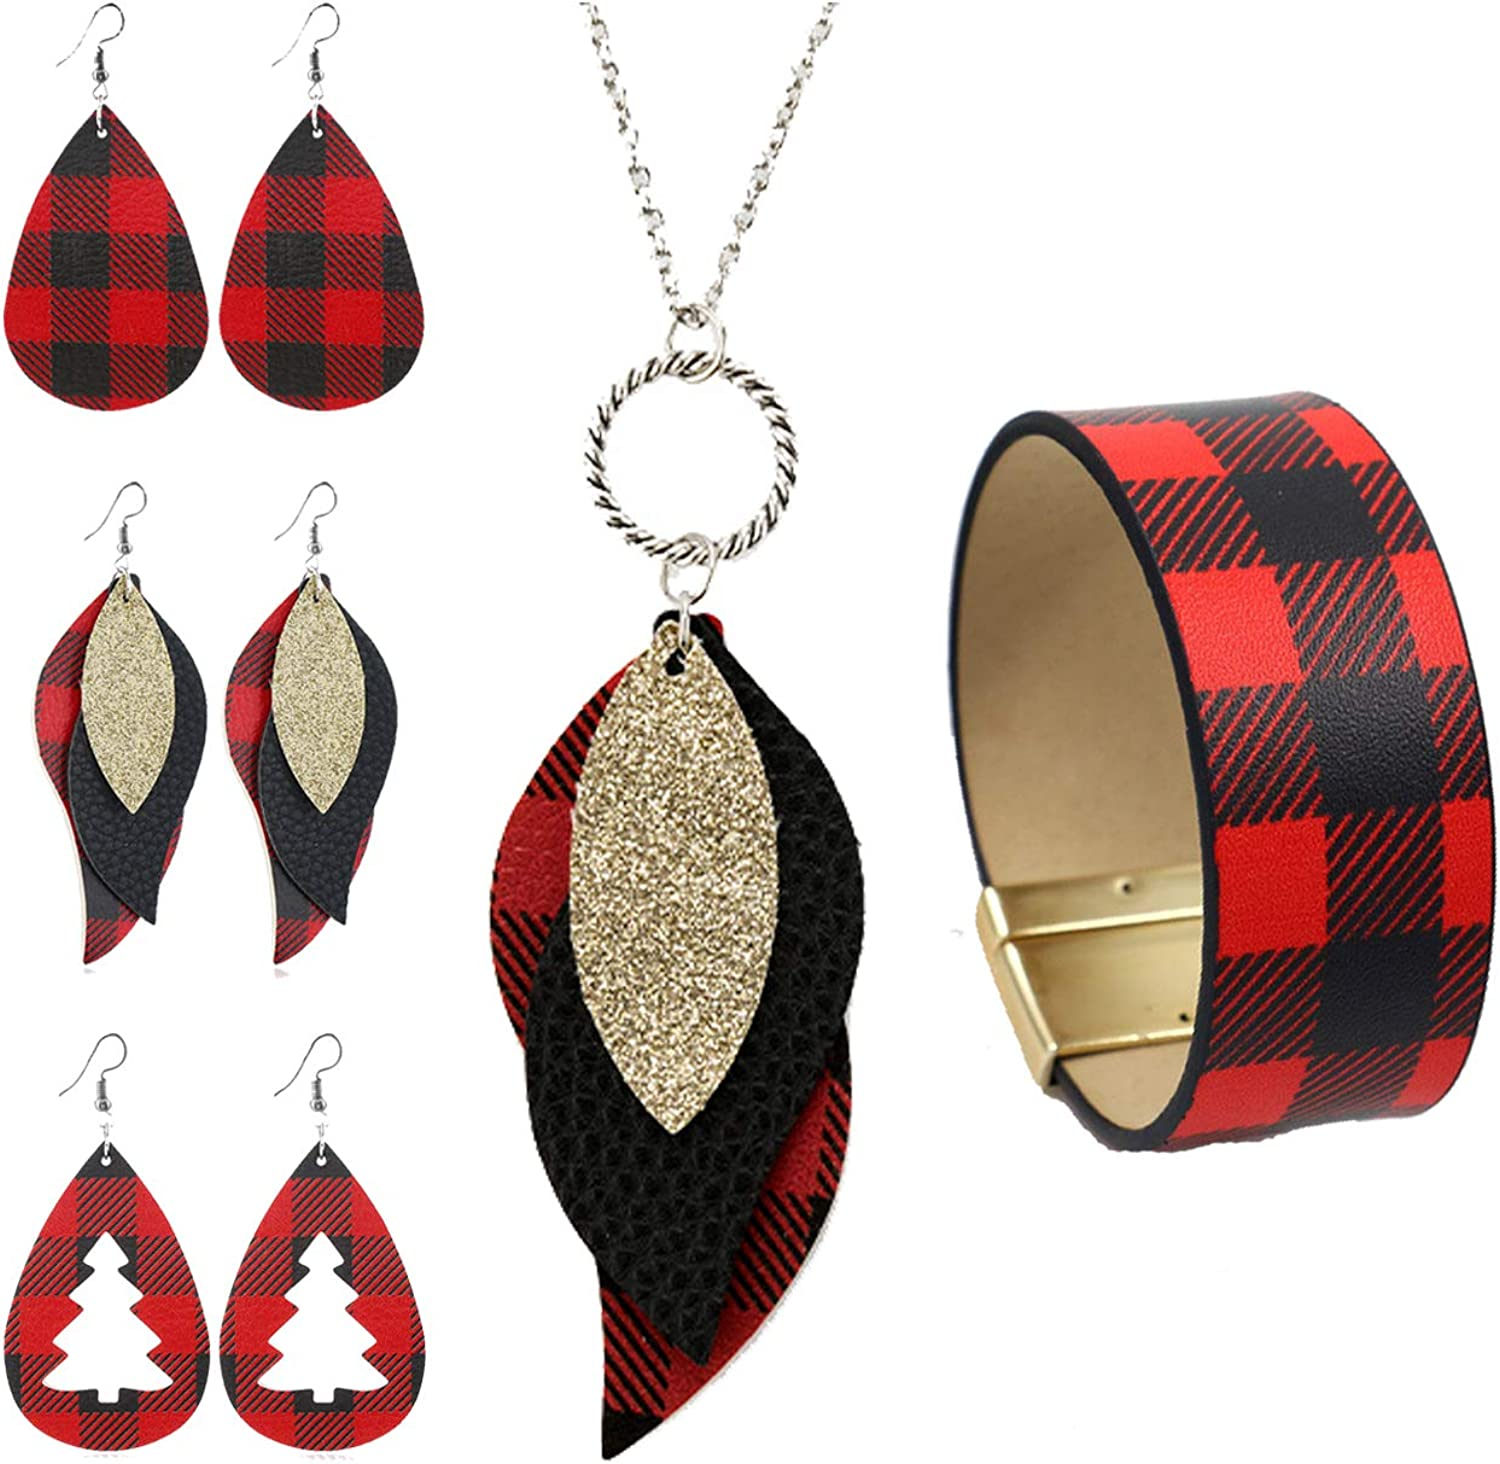 FUTIMELY 5 Pcs Christmas Buffalo Plaid Jewelry Set Gifts for Women Girls,Christmas Red Plaid Earrings Bracelet,Faux Leather Plaid Print Dangle Earrings and Necklace Set